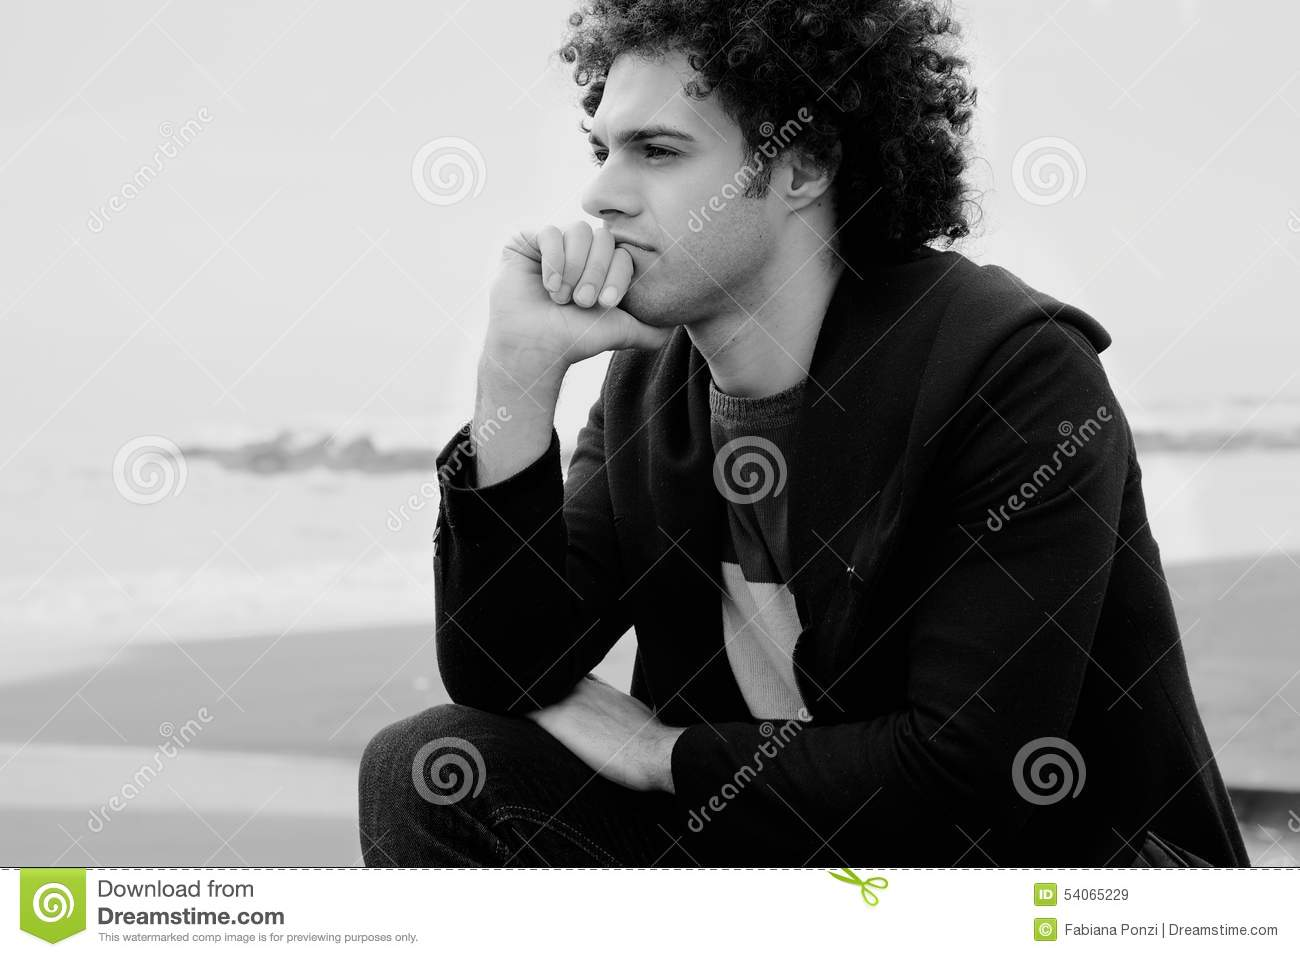 Black and white portrait of sad man in front of the ocean